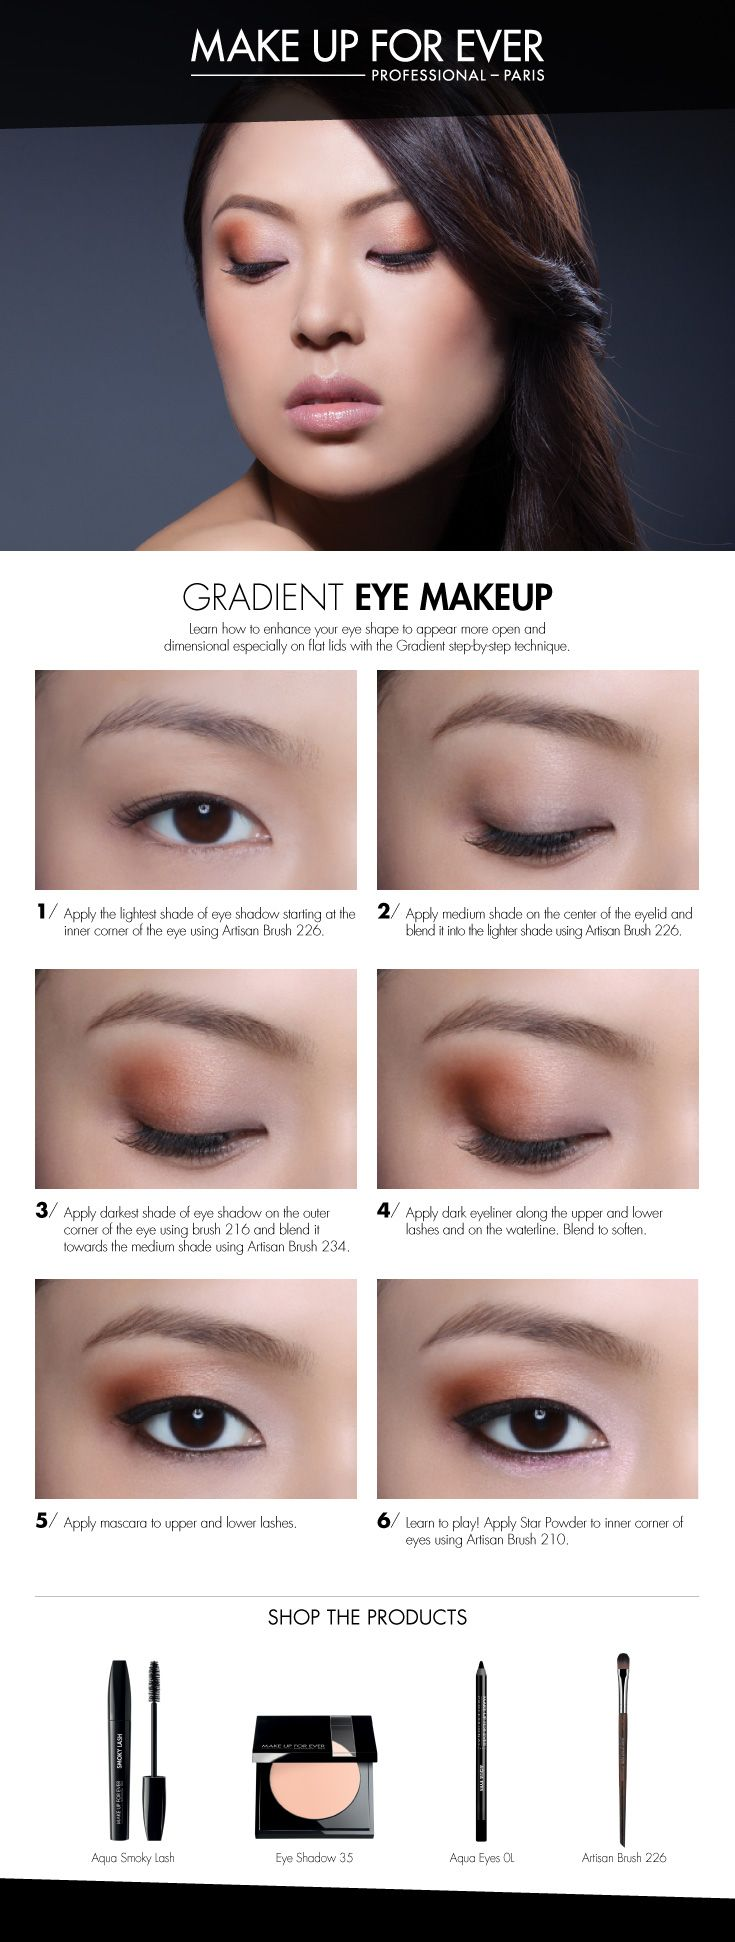 Gradient Eye Makeup -use this technique to give the illusion of wider set eyes.   #Makeupforever